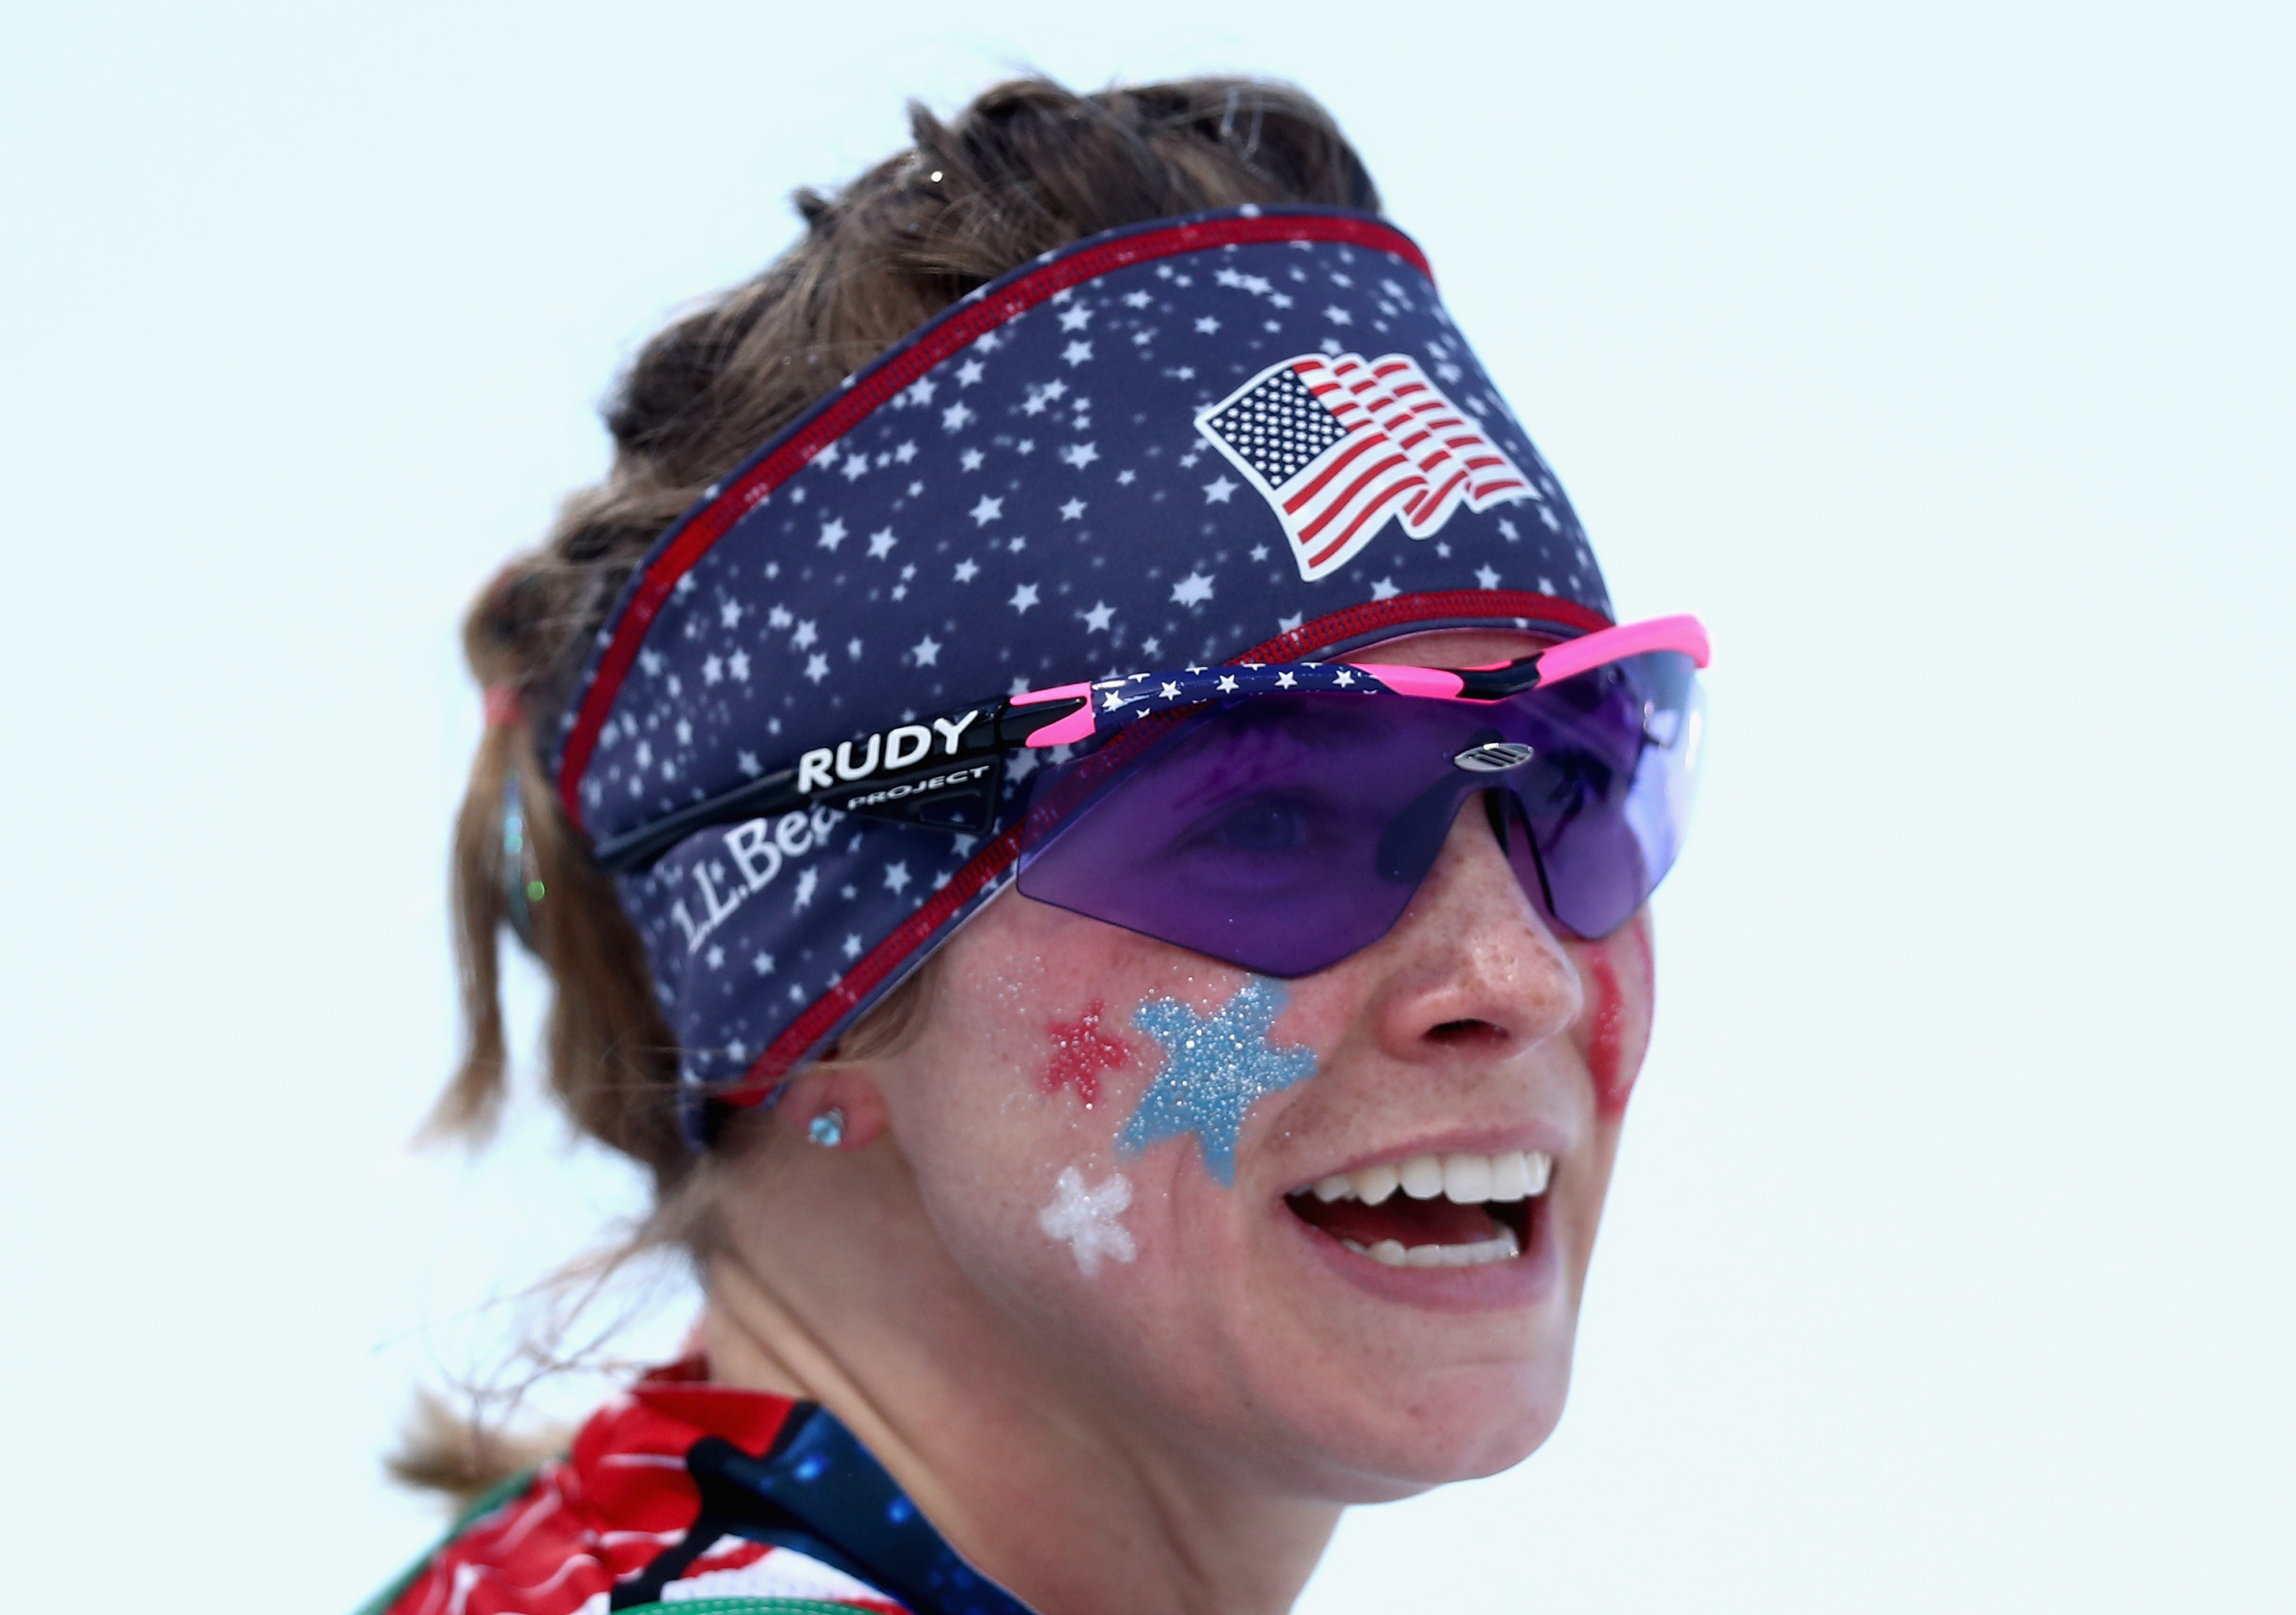 Jessie Diggins will be flag bearer for United States team at closing ceremony